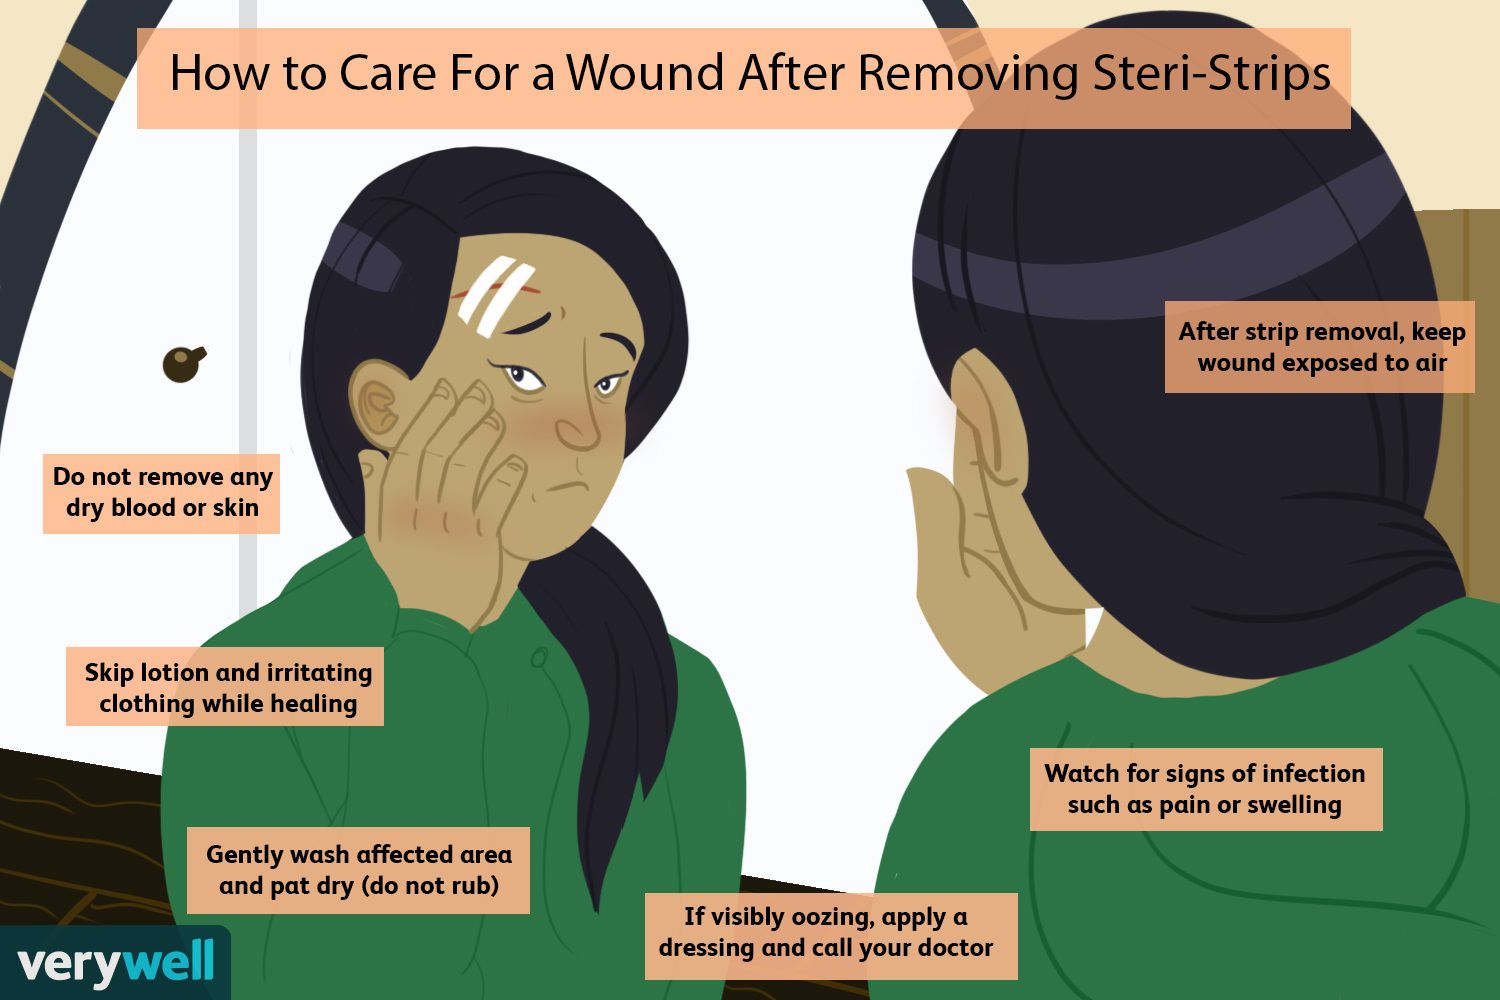 How to Care for a Wound After Removing Steri-Strips